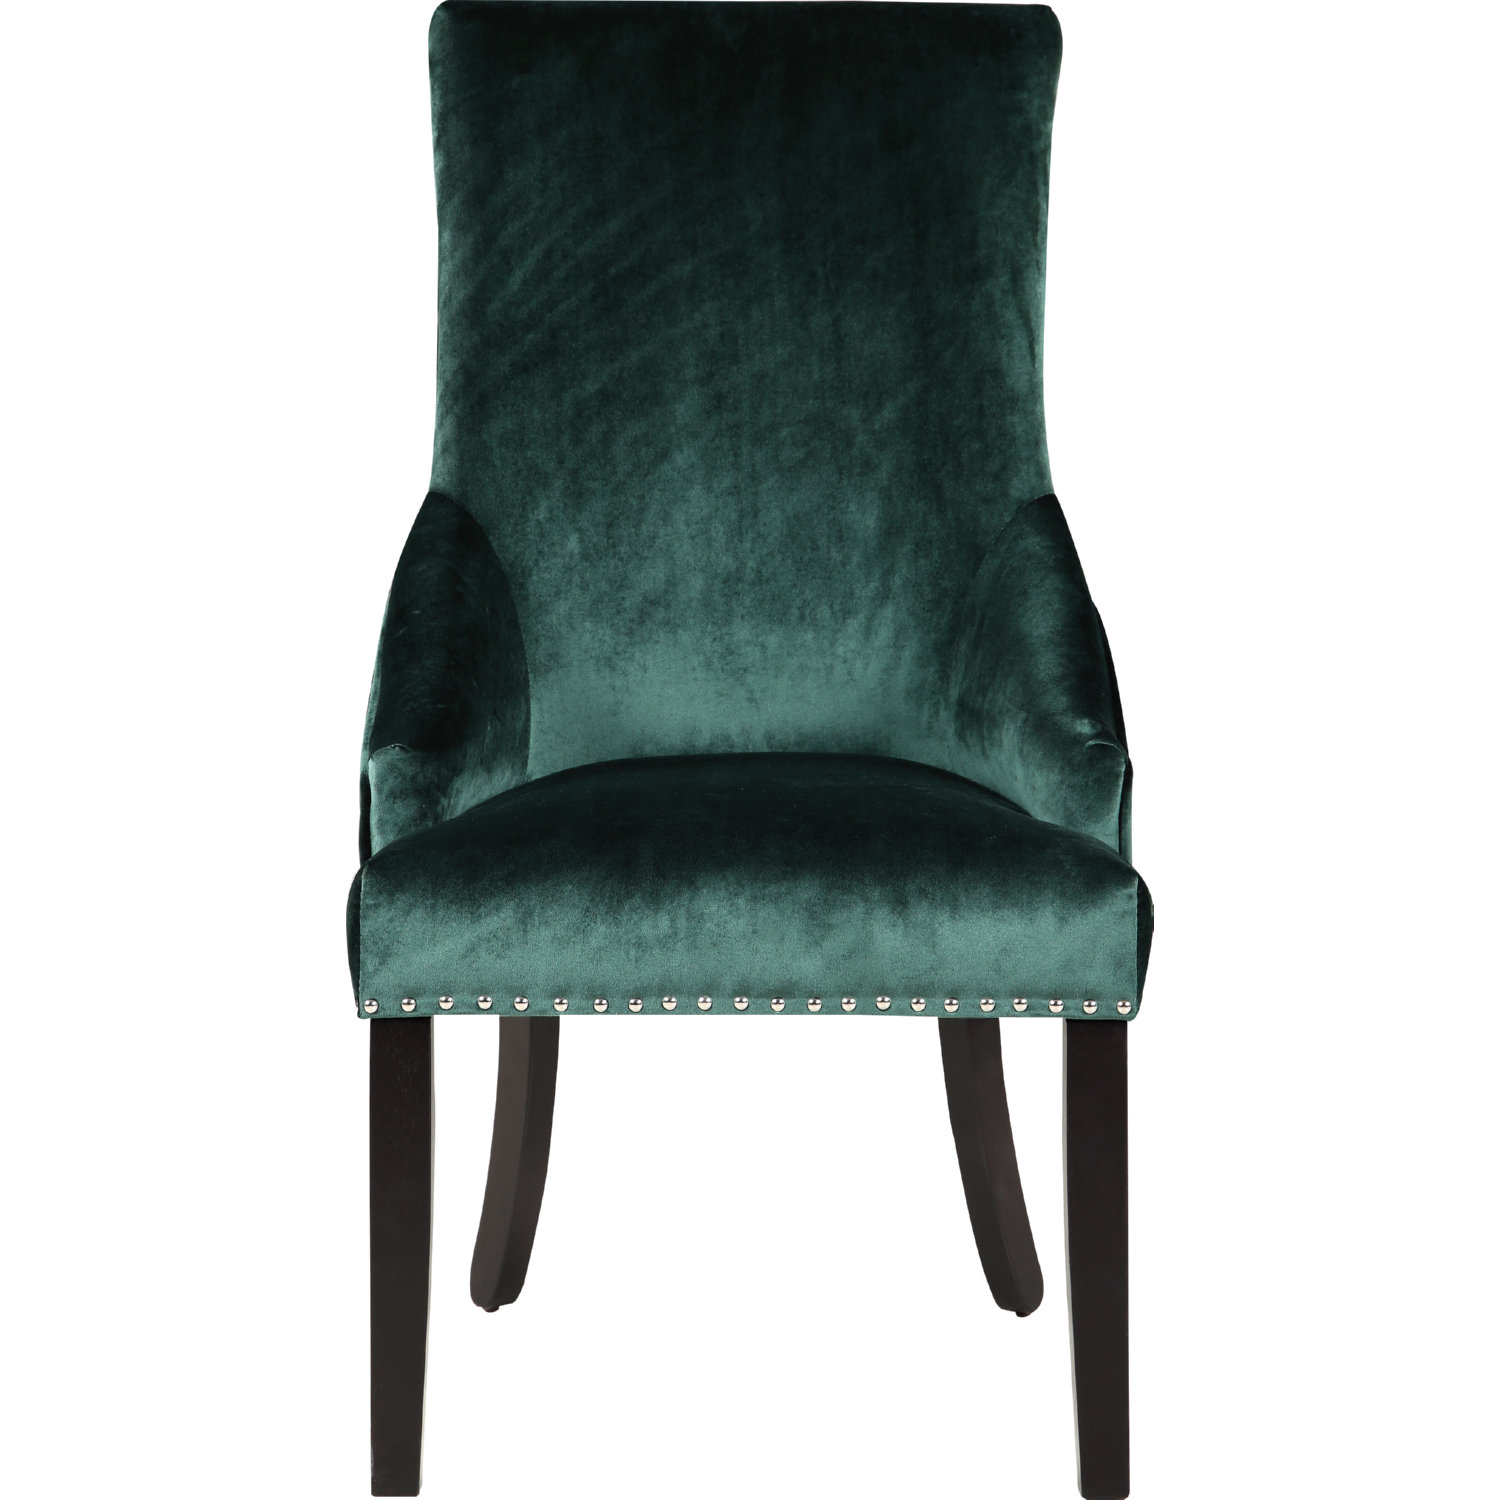 Machla Dining Chair In Green Velvet W Diamond Tufted Back Set Of 2 By Chic Home